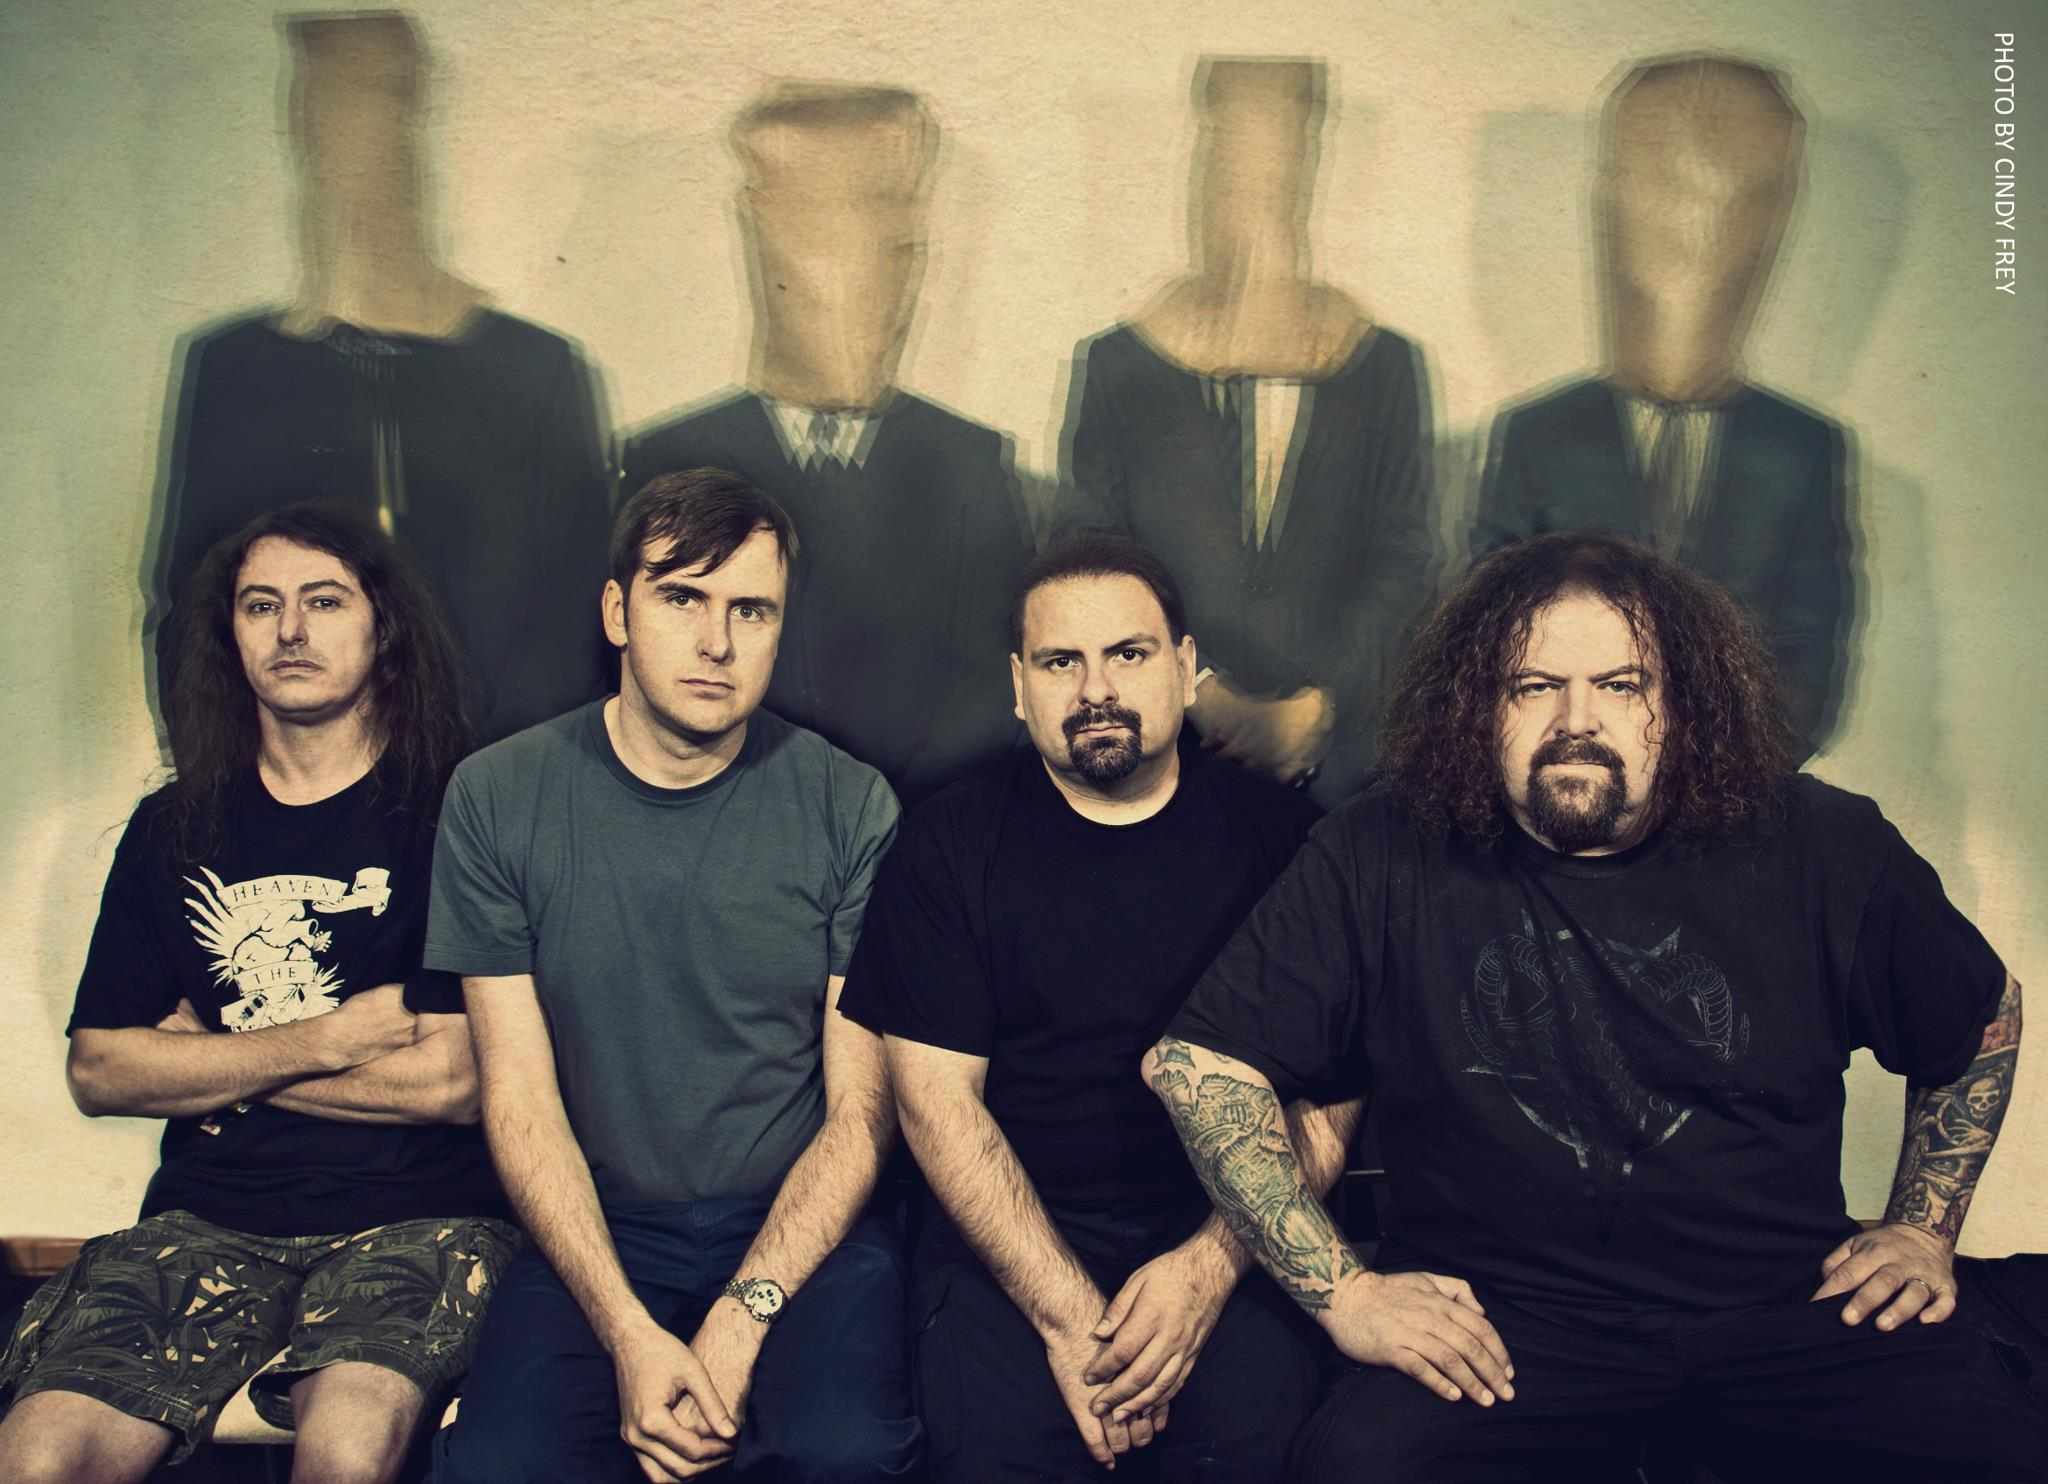 http://www.nocleansinging.com/wp-content/uploads/2012/11/Napalm-Death.jpg